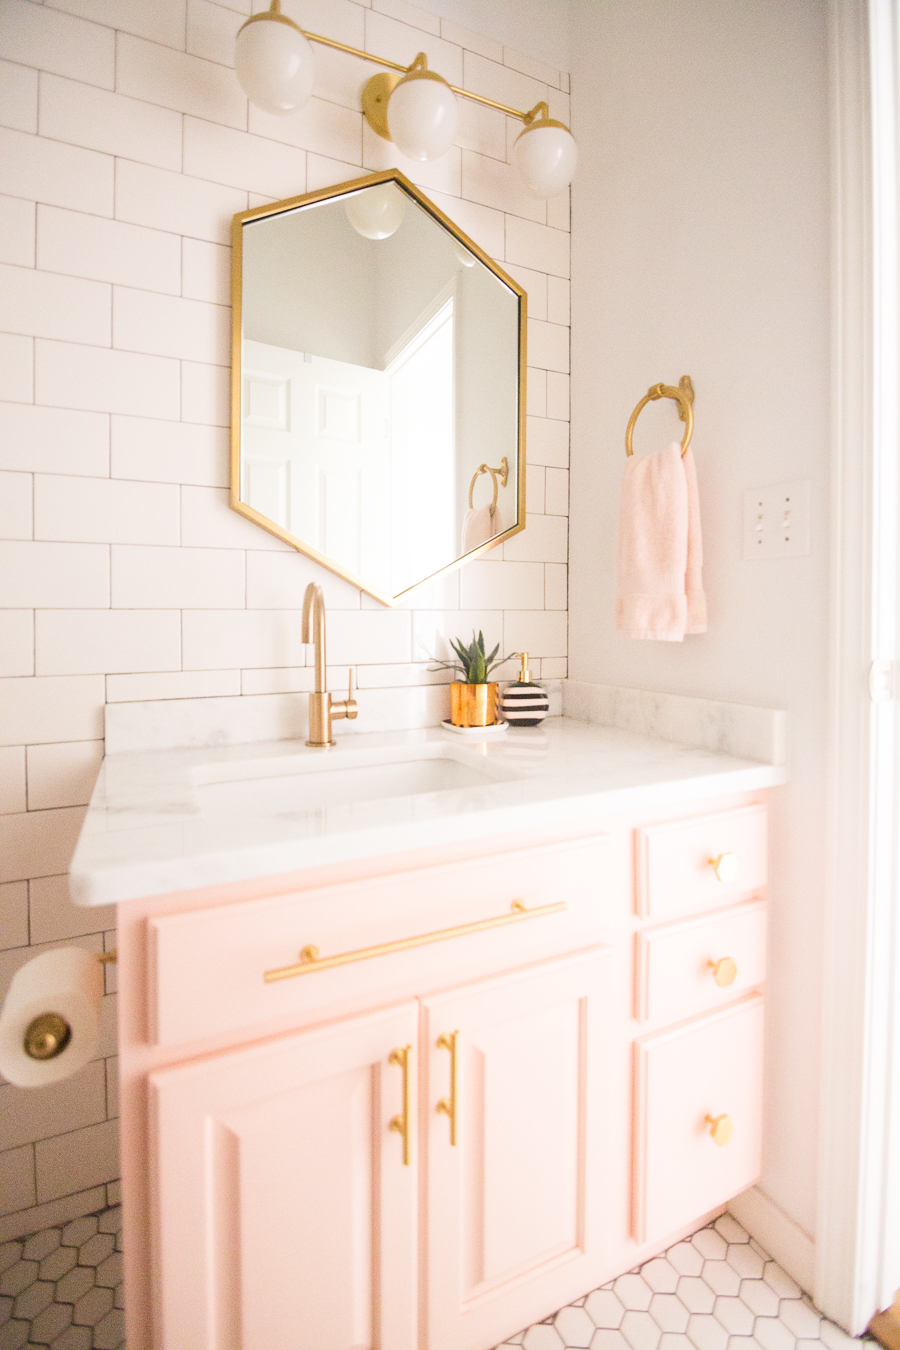 Modern Glam Blush Girls Bathroom Design gold hexagon mirror blush cabinets gold hardware white hexagon floor glass shelves pink bathroom cabinets gold orb sconce-1-3